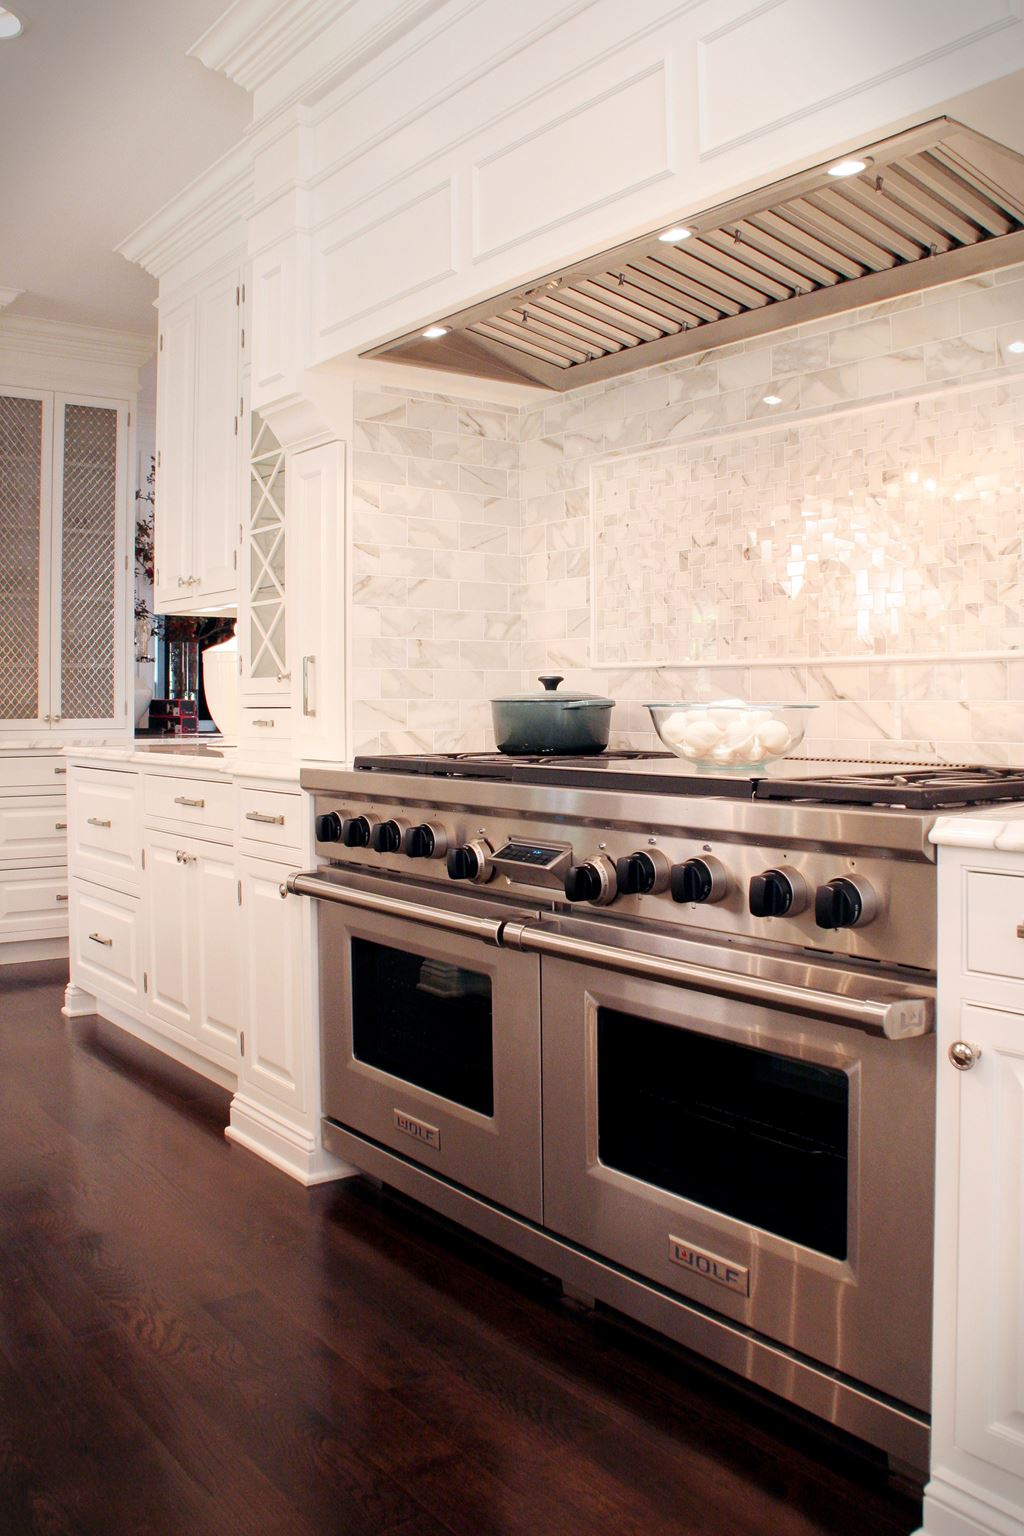 Uncategorized Wolf Kitchen Appliances the classic white kitchen deconstructed gallery